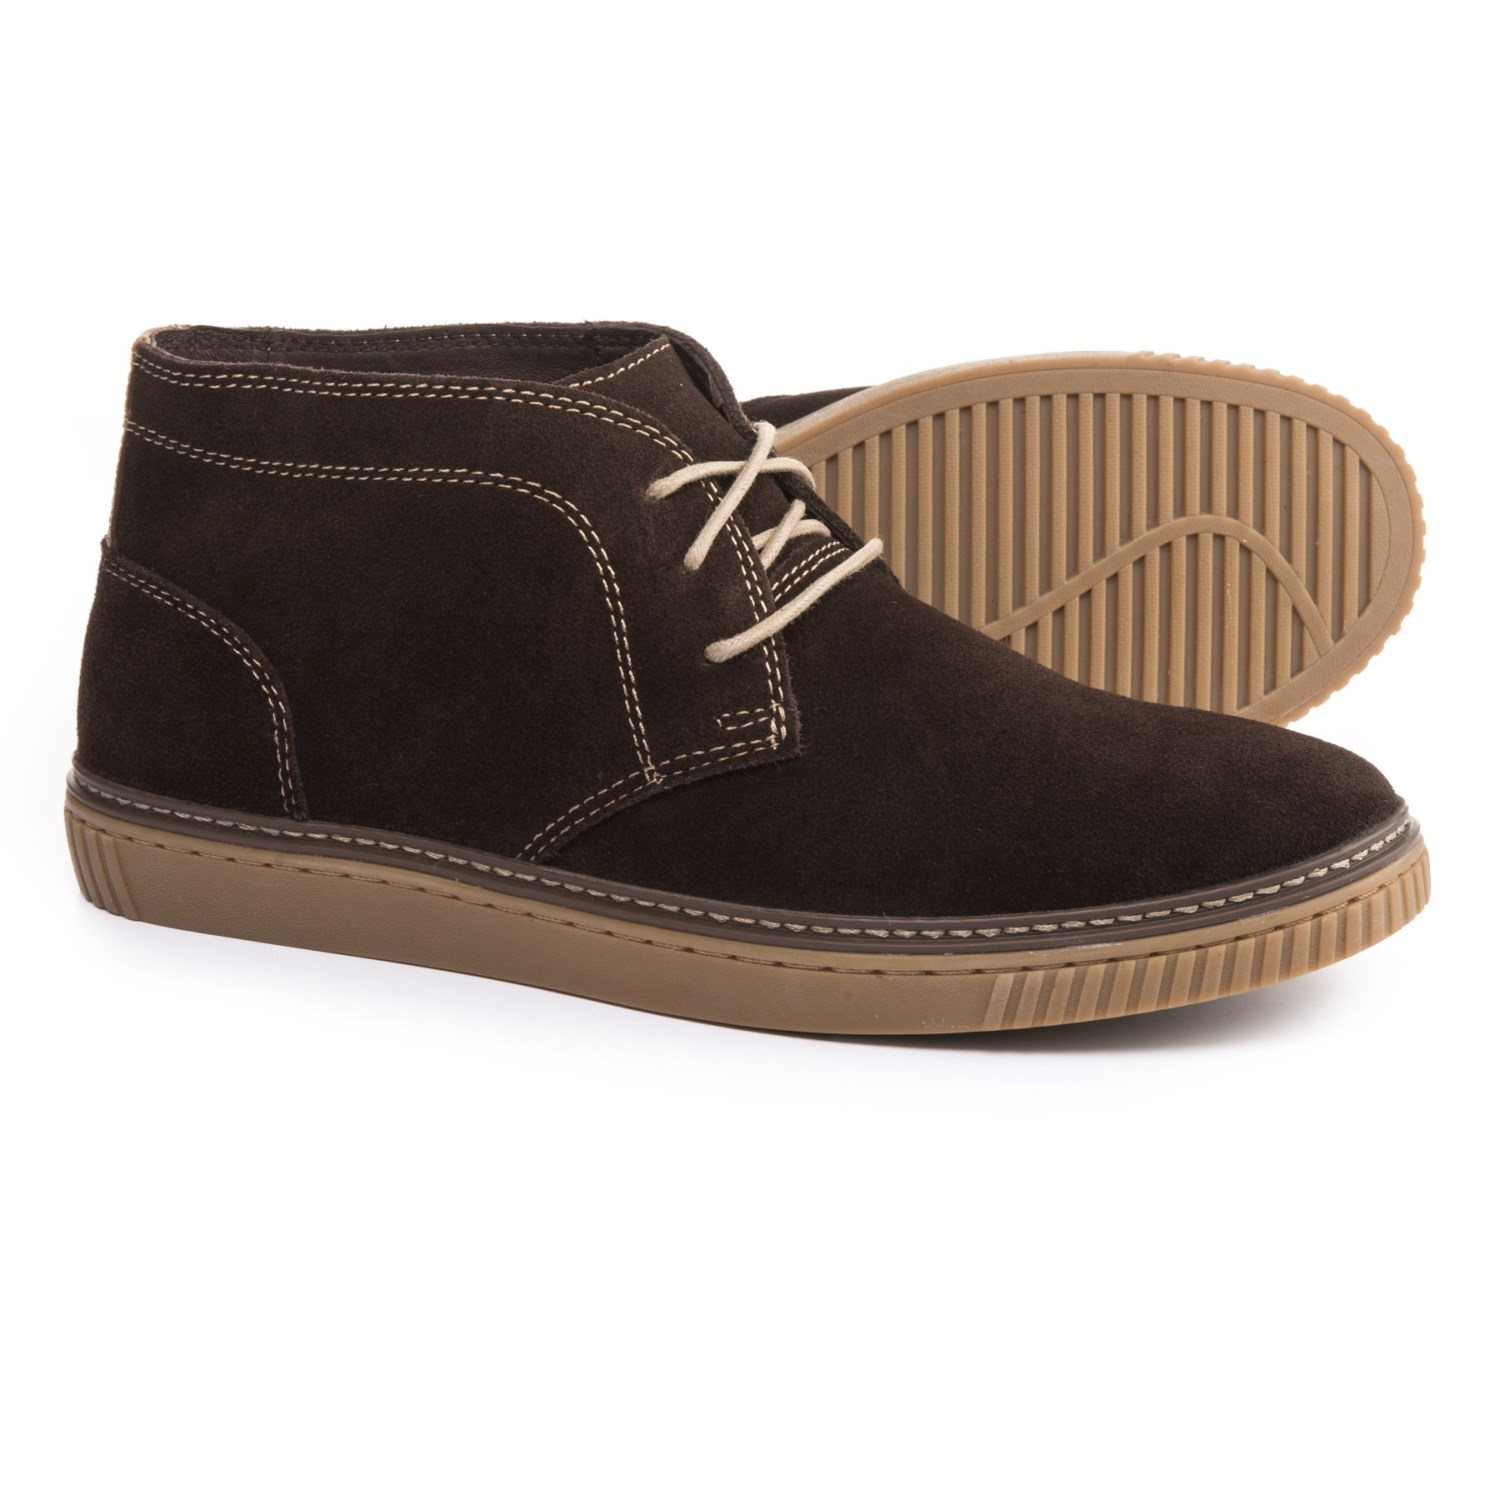 9dc2152b5e9 Johnston & Murphy Wallace Chukka Boots - Suede (For Men)